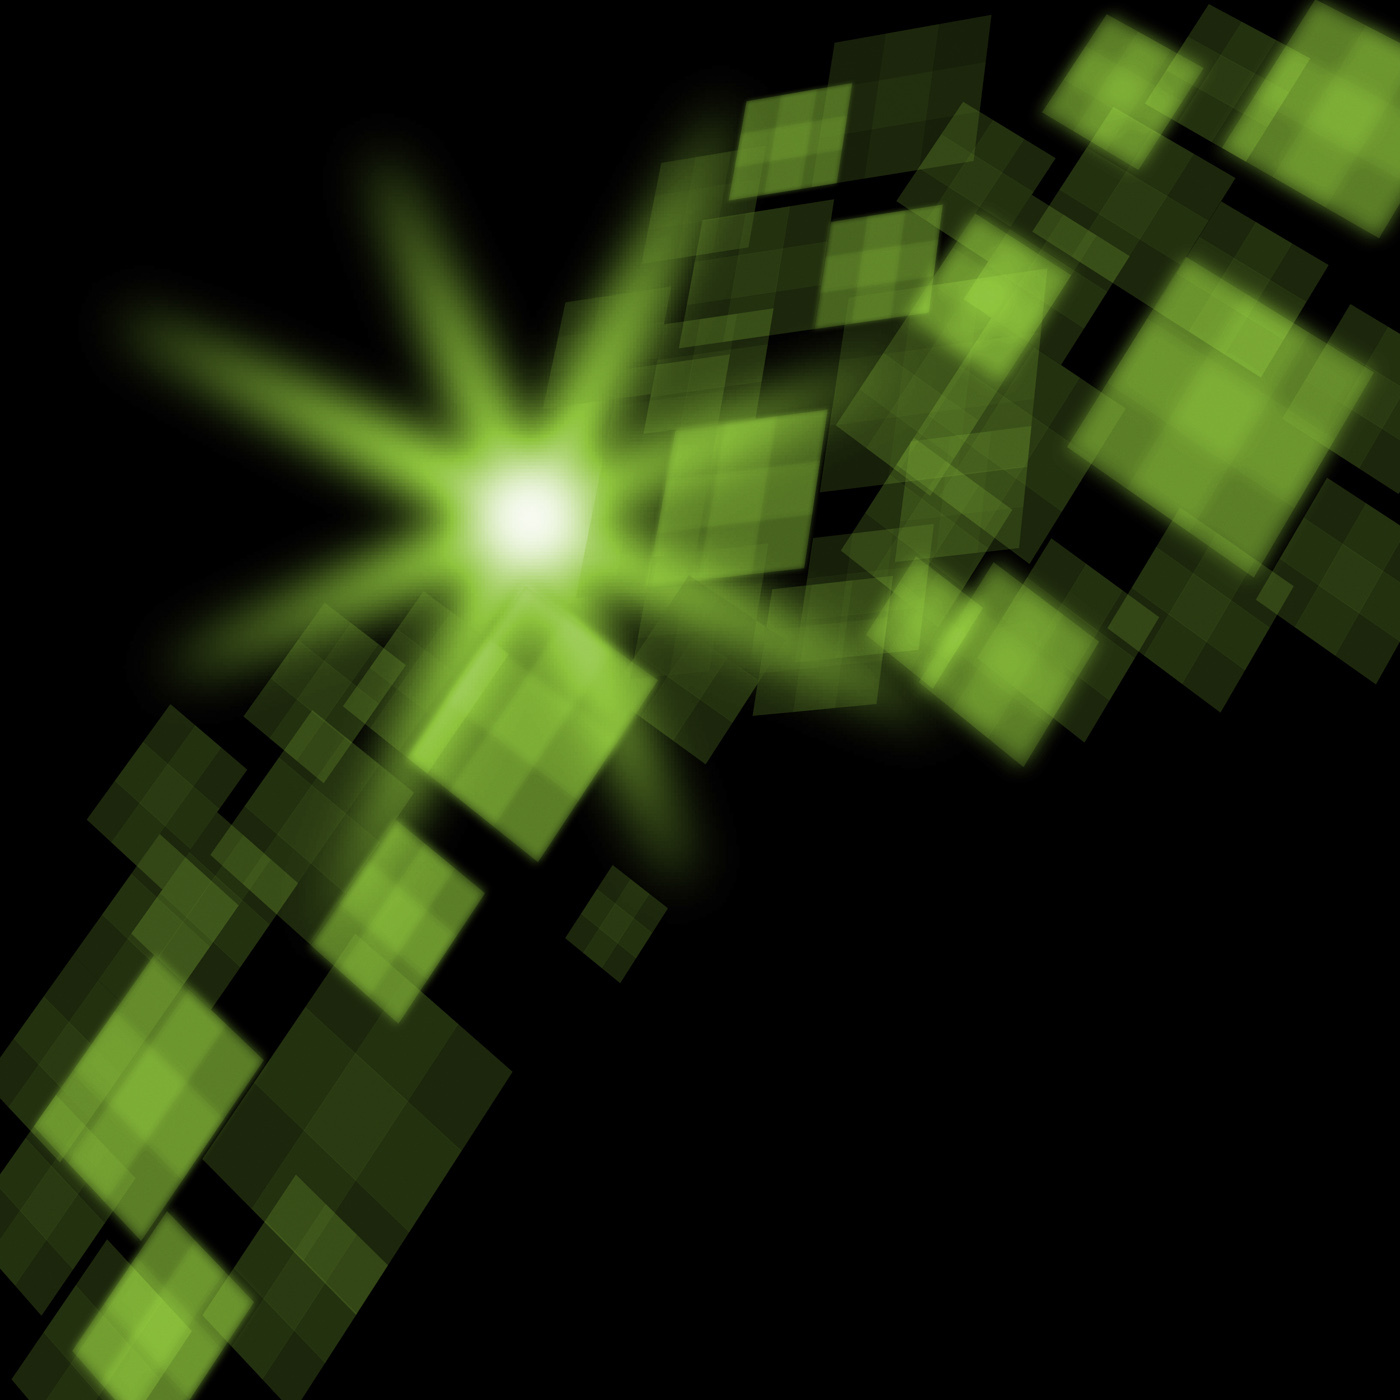 Green cubes background means futuristic concept or pixeled design photo